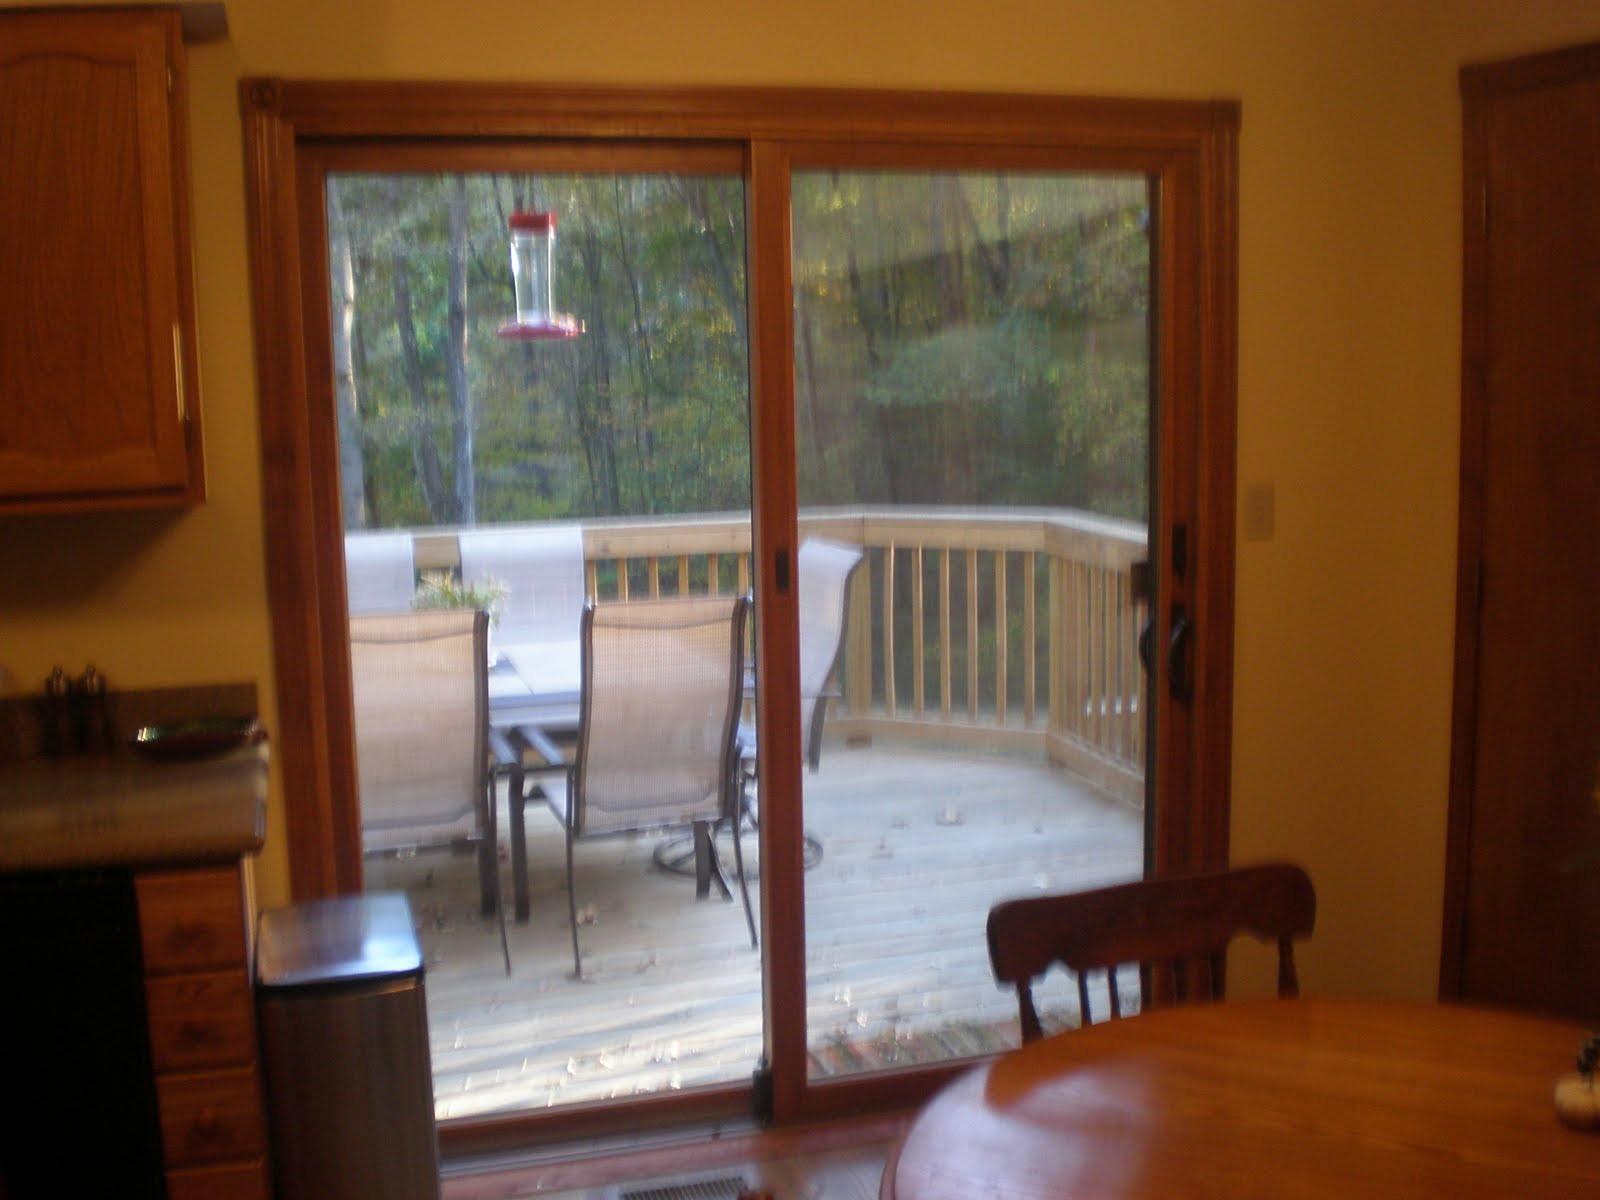 Dallas beewindow terratone andersen patio doors and for Andersen patio doors